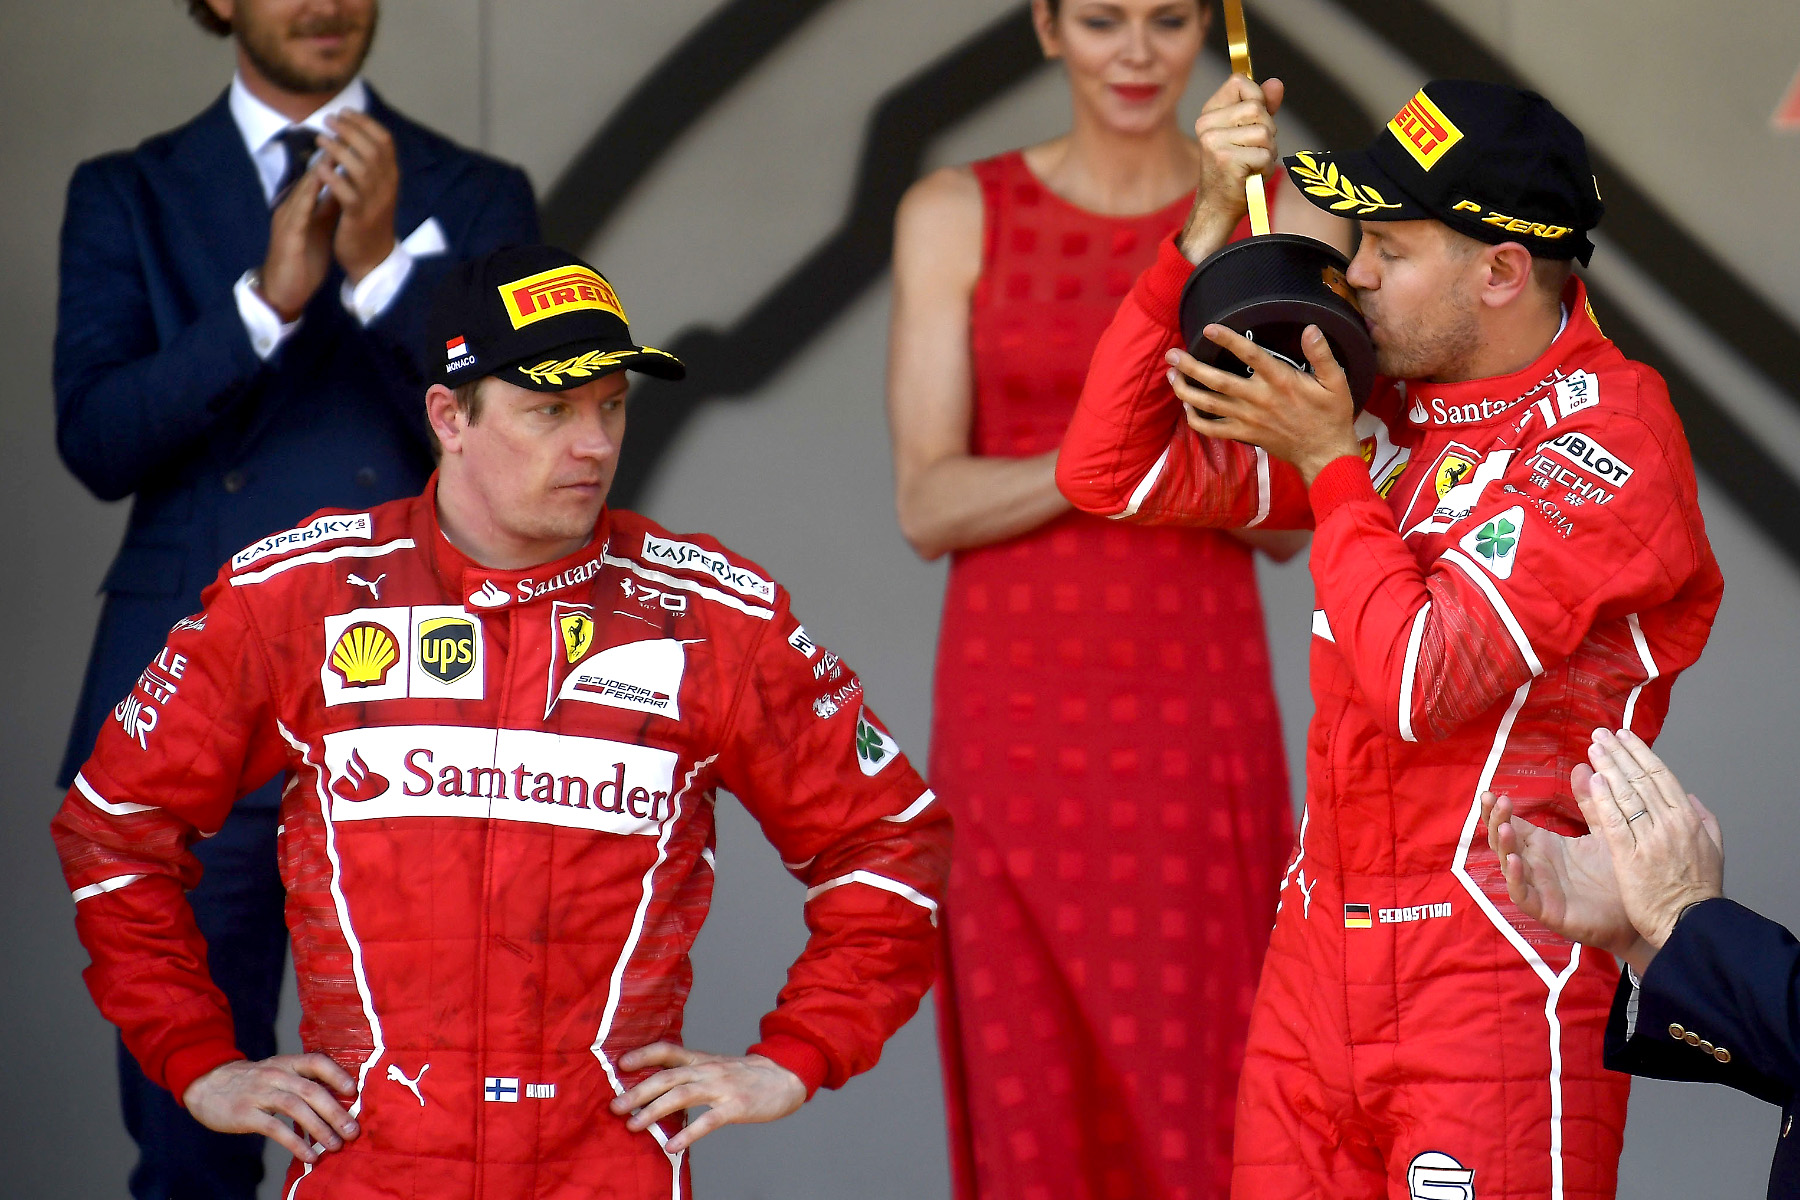 Kimi Raikkonen and Sebastian Vettel on the podium of the 2017 Monaco Grand Prix